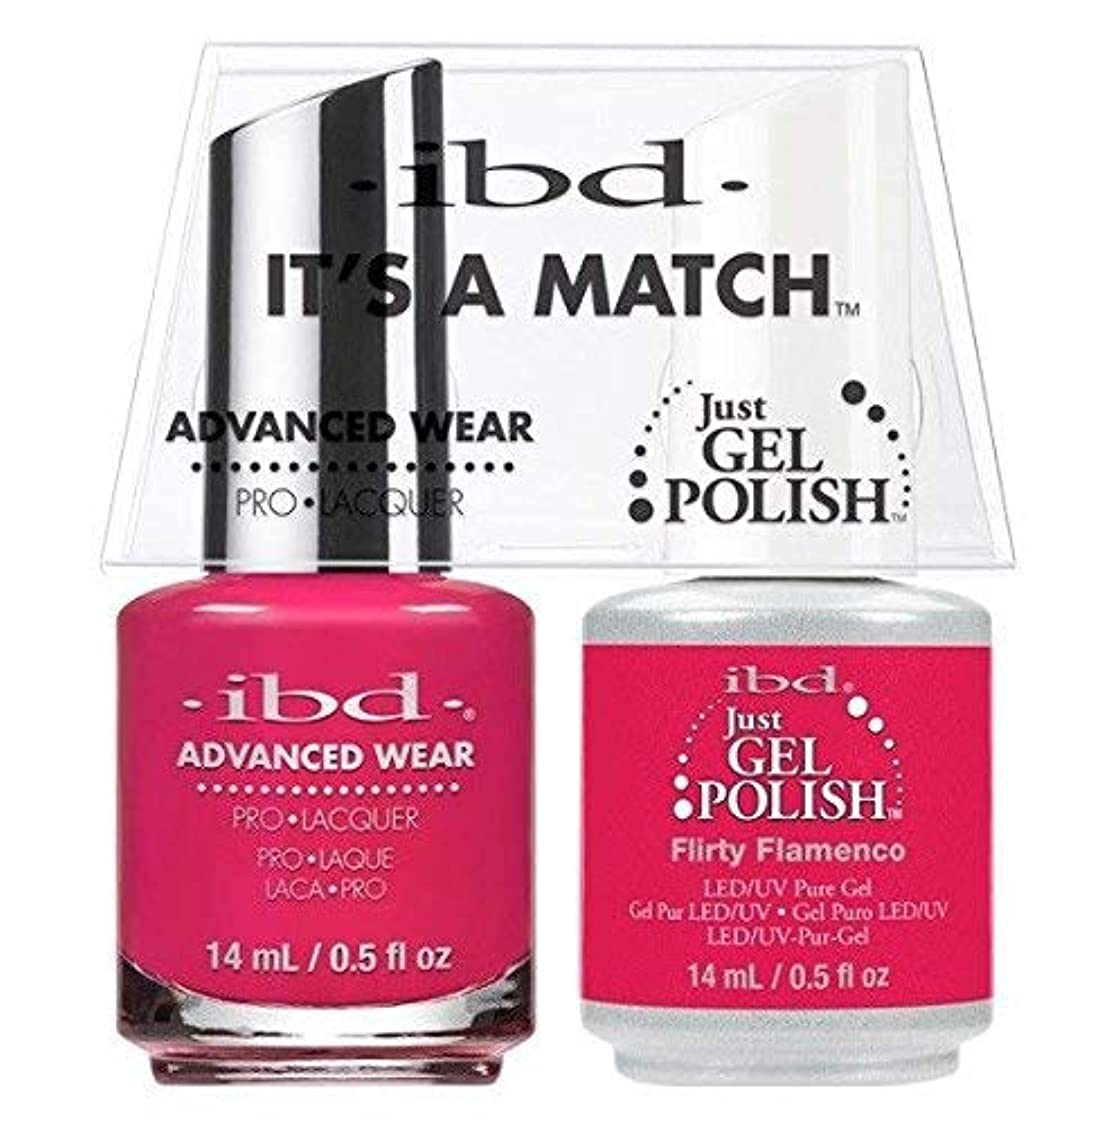 会議トレーダー気性ibd - It's A Match -Duo Pack- Flirty Flamenco - 14 mL / 0.5 oz Each